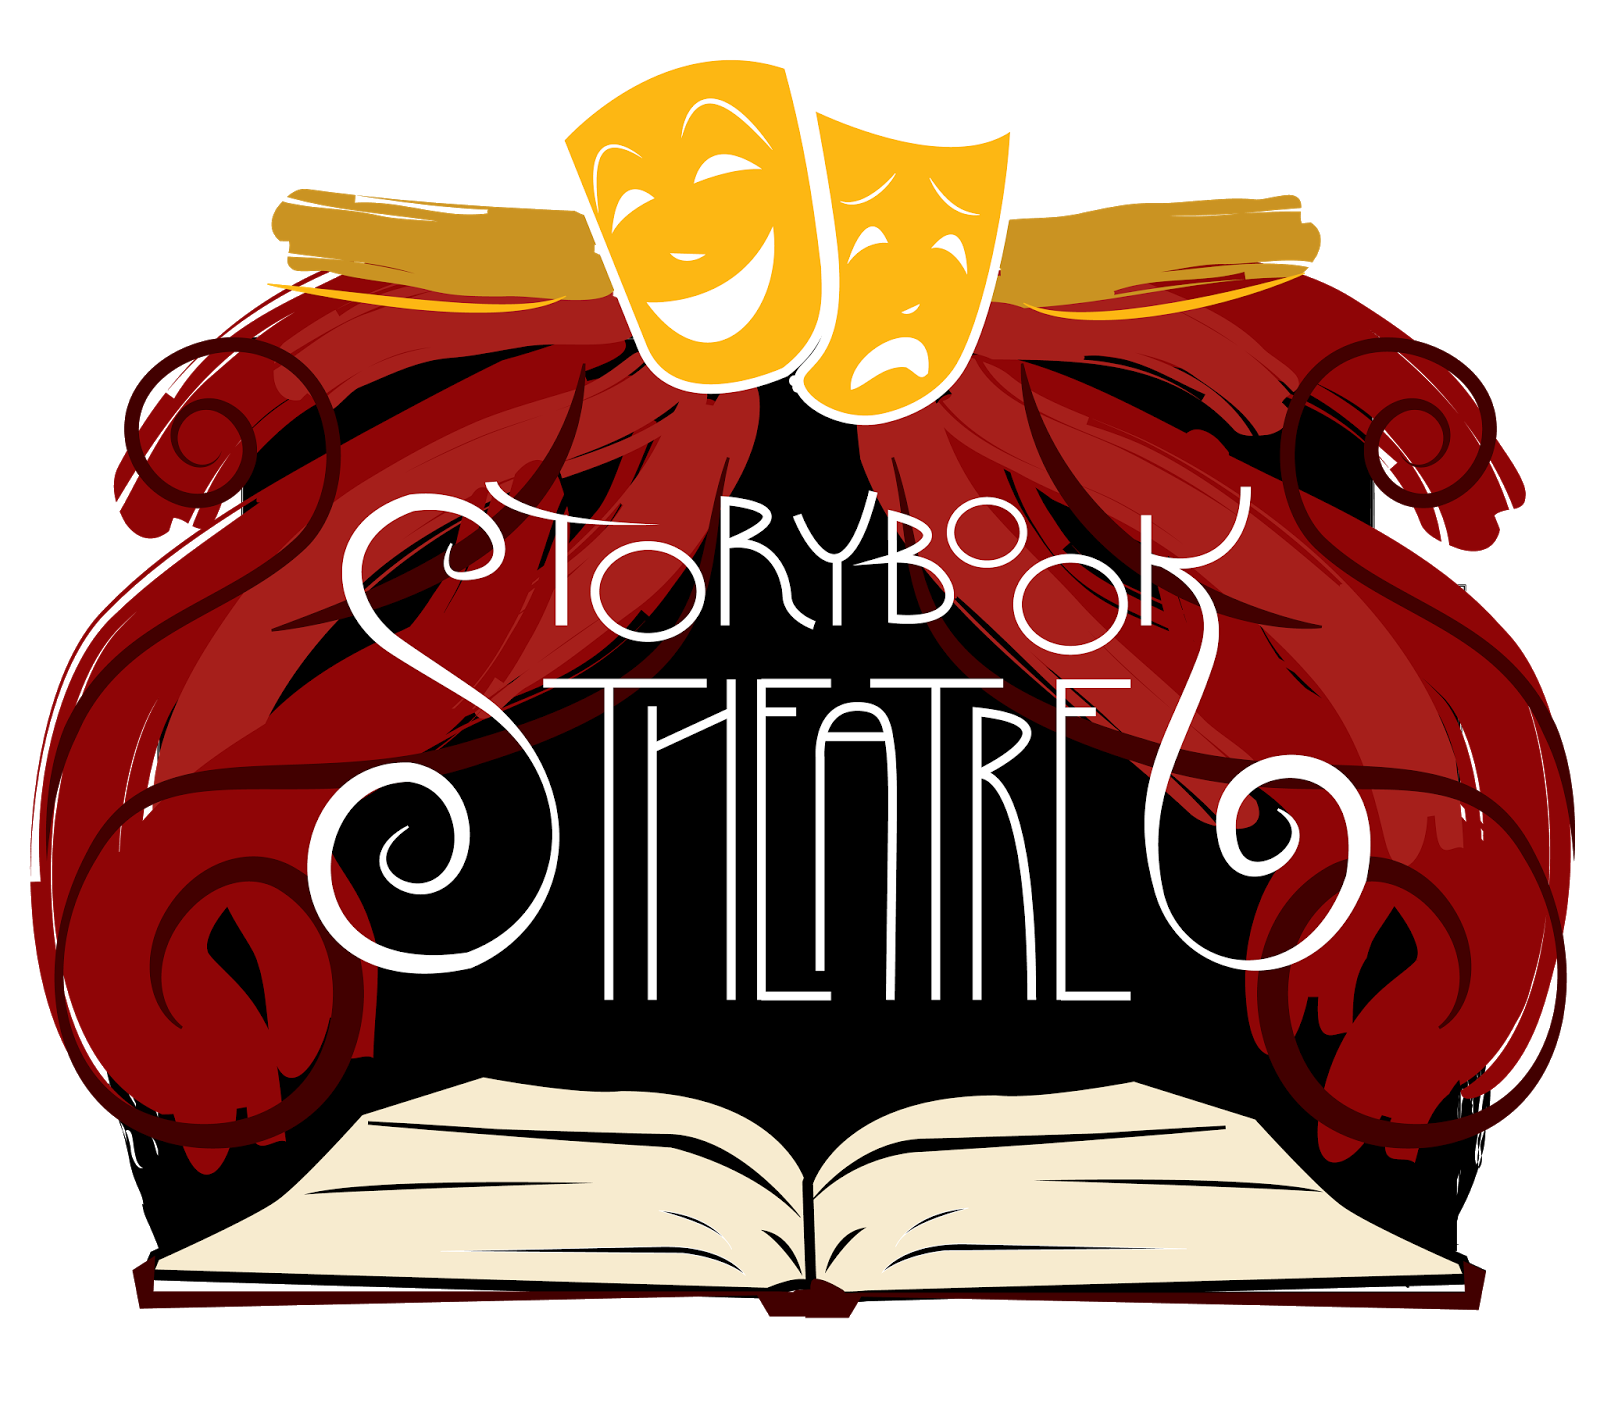 Storybook Theatre & Private Drama Studio